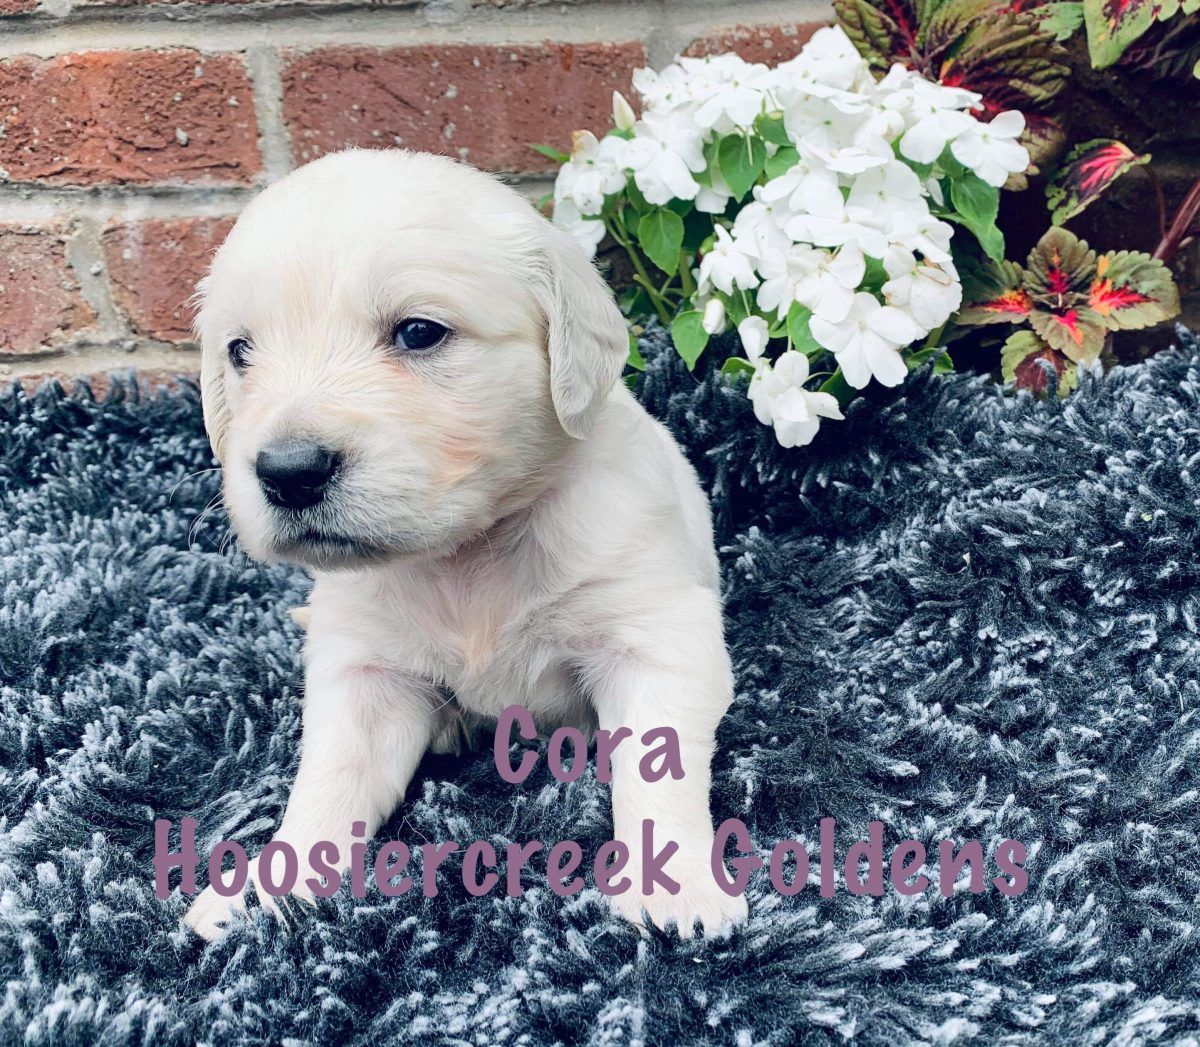 Cora Female Akc Golden Retriever For Sale Loogootee Indiana